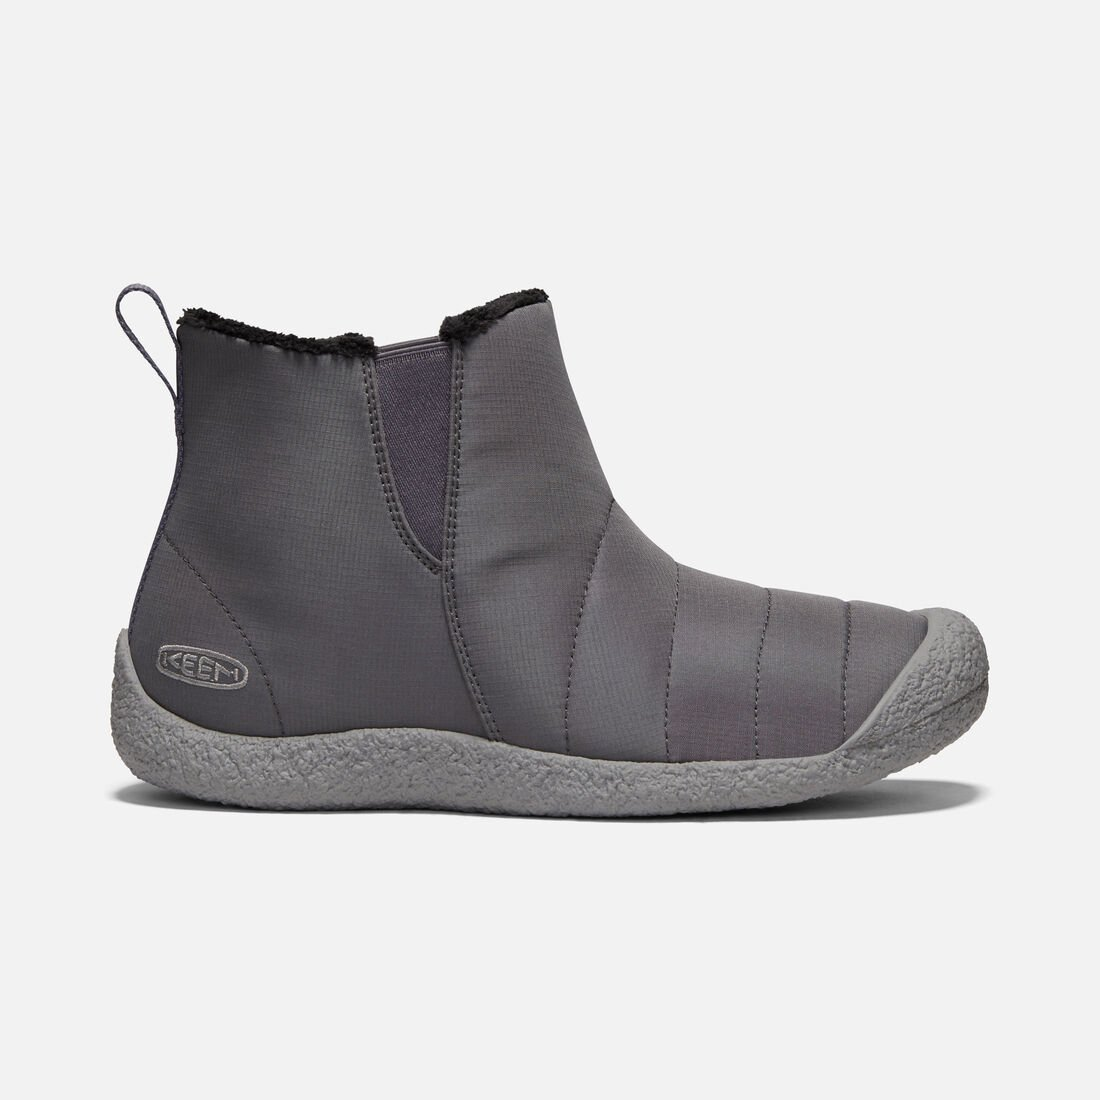 Men's Howser Boot in MAGNET/STEEL GREY - large view.